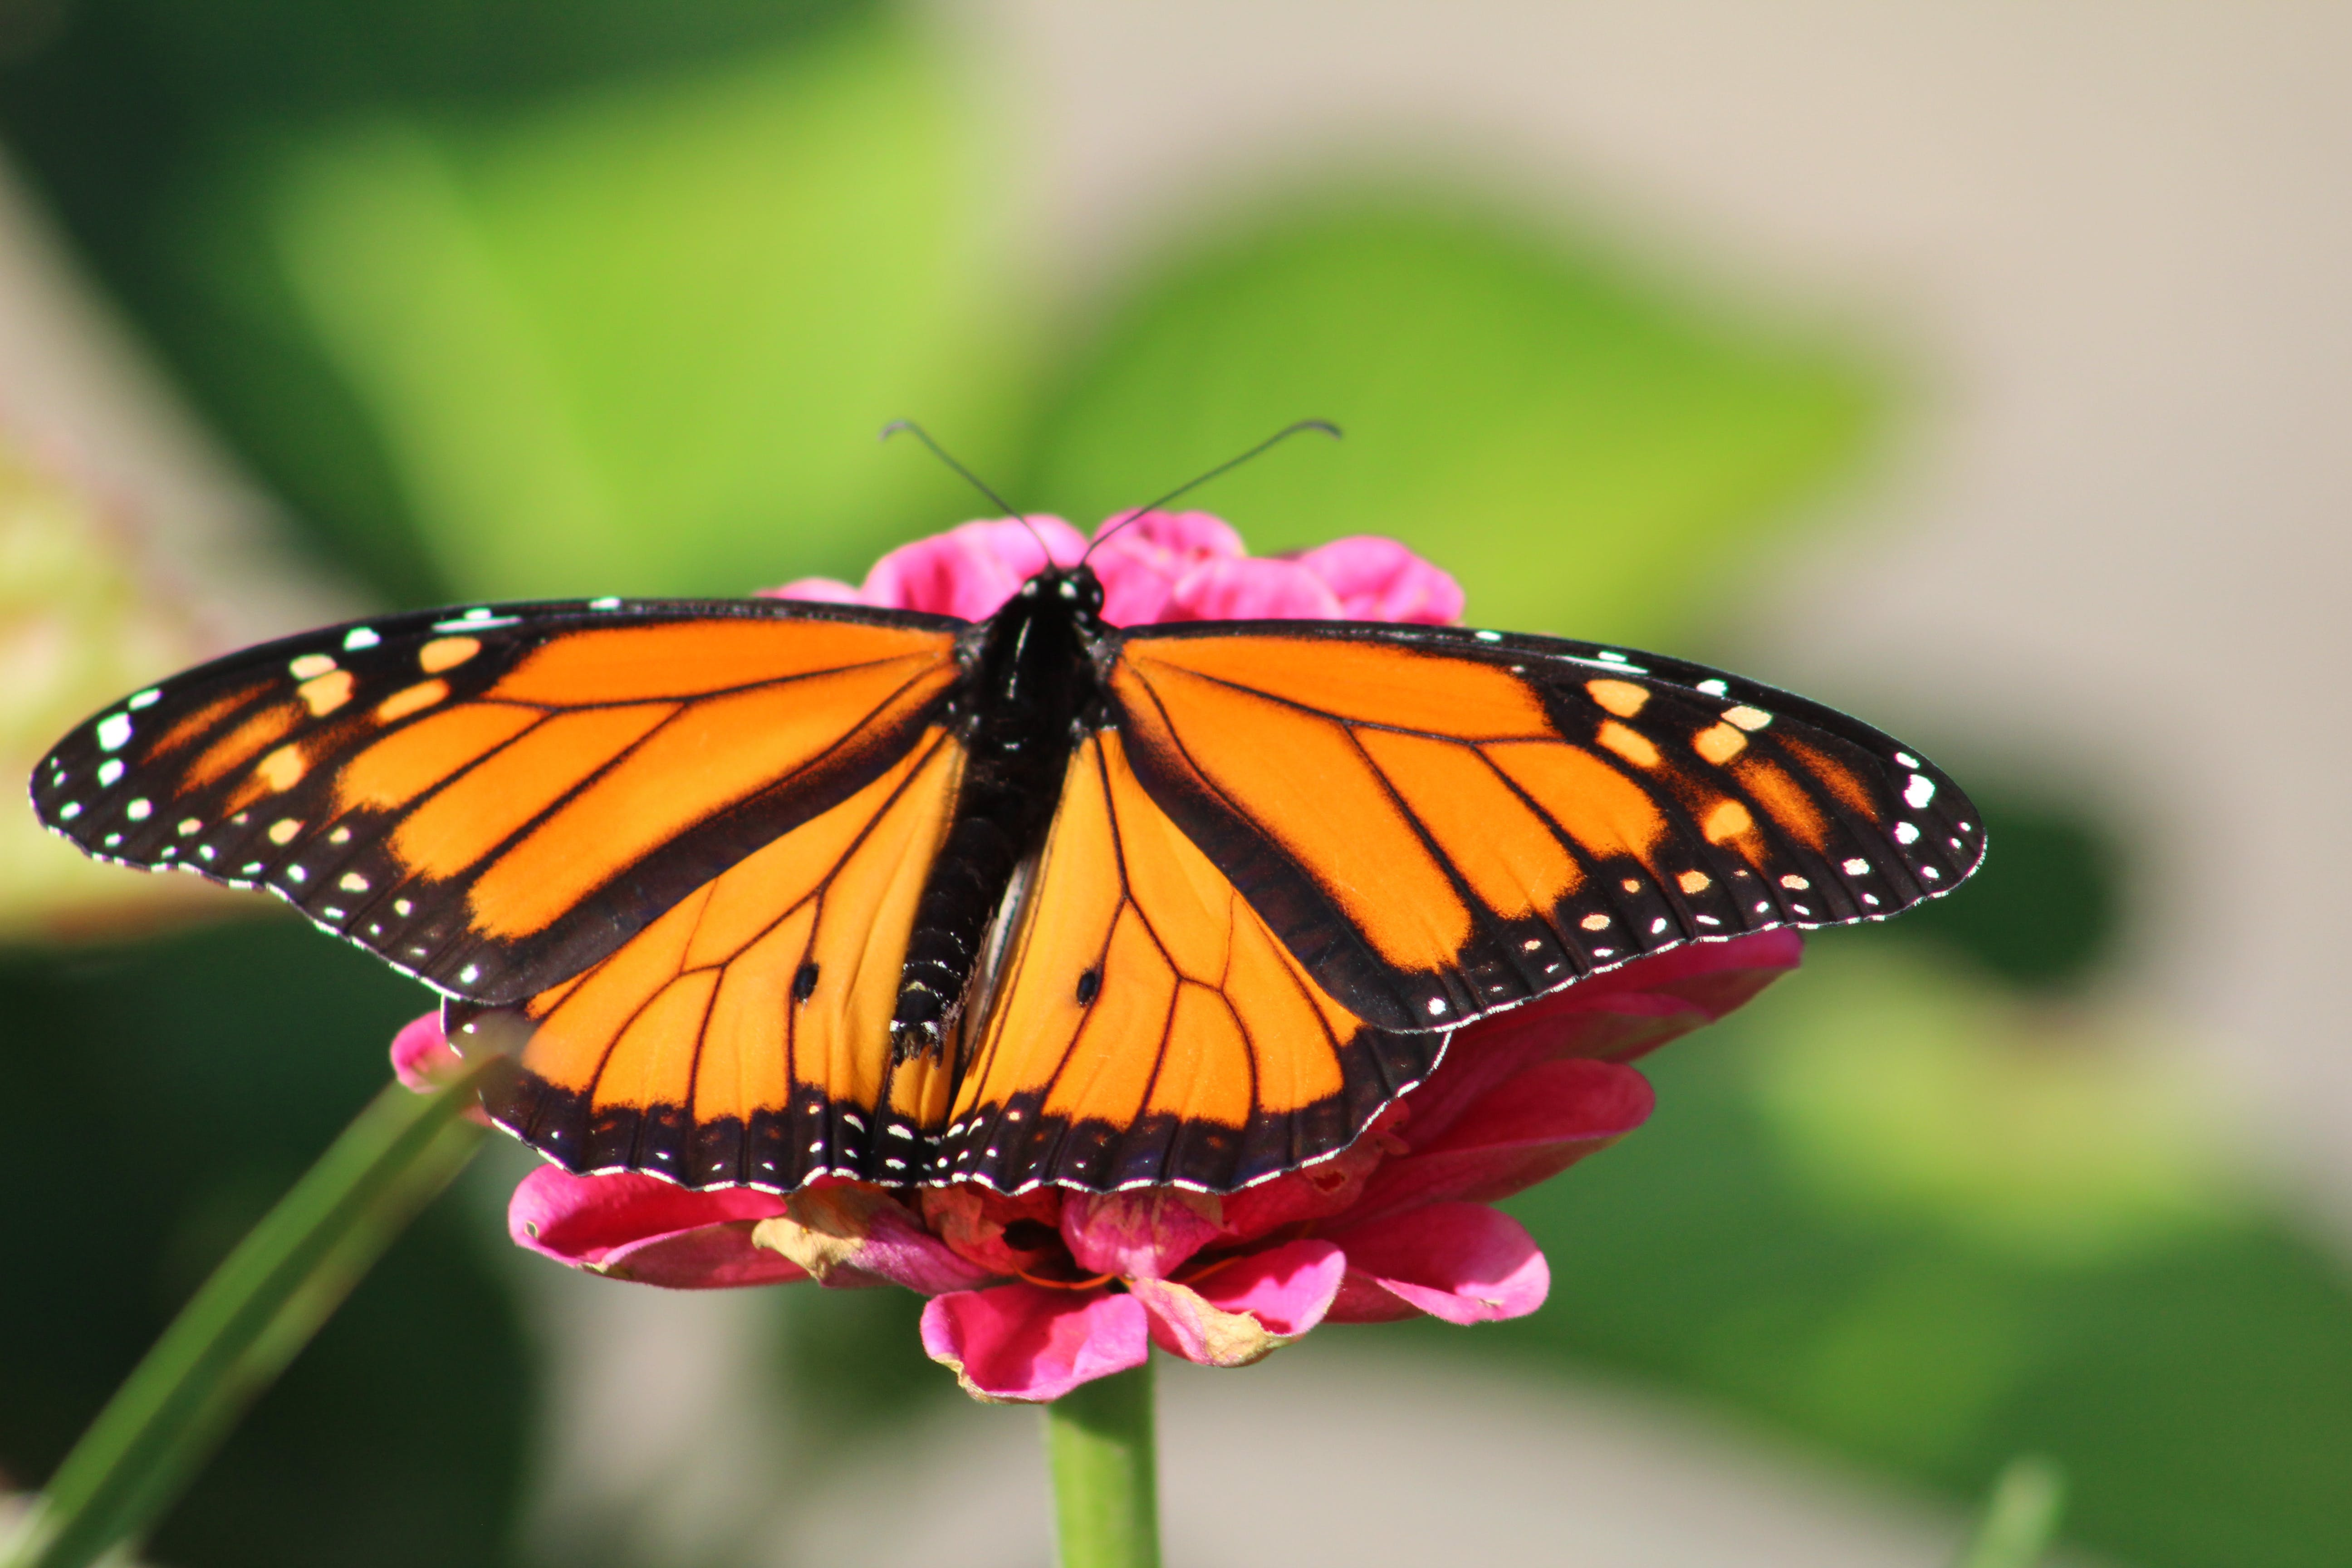 Free stock photo of butterflies, butterfly on a flower, insects, monarch butterfly